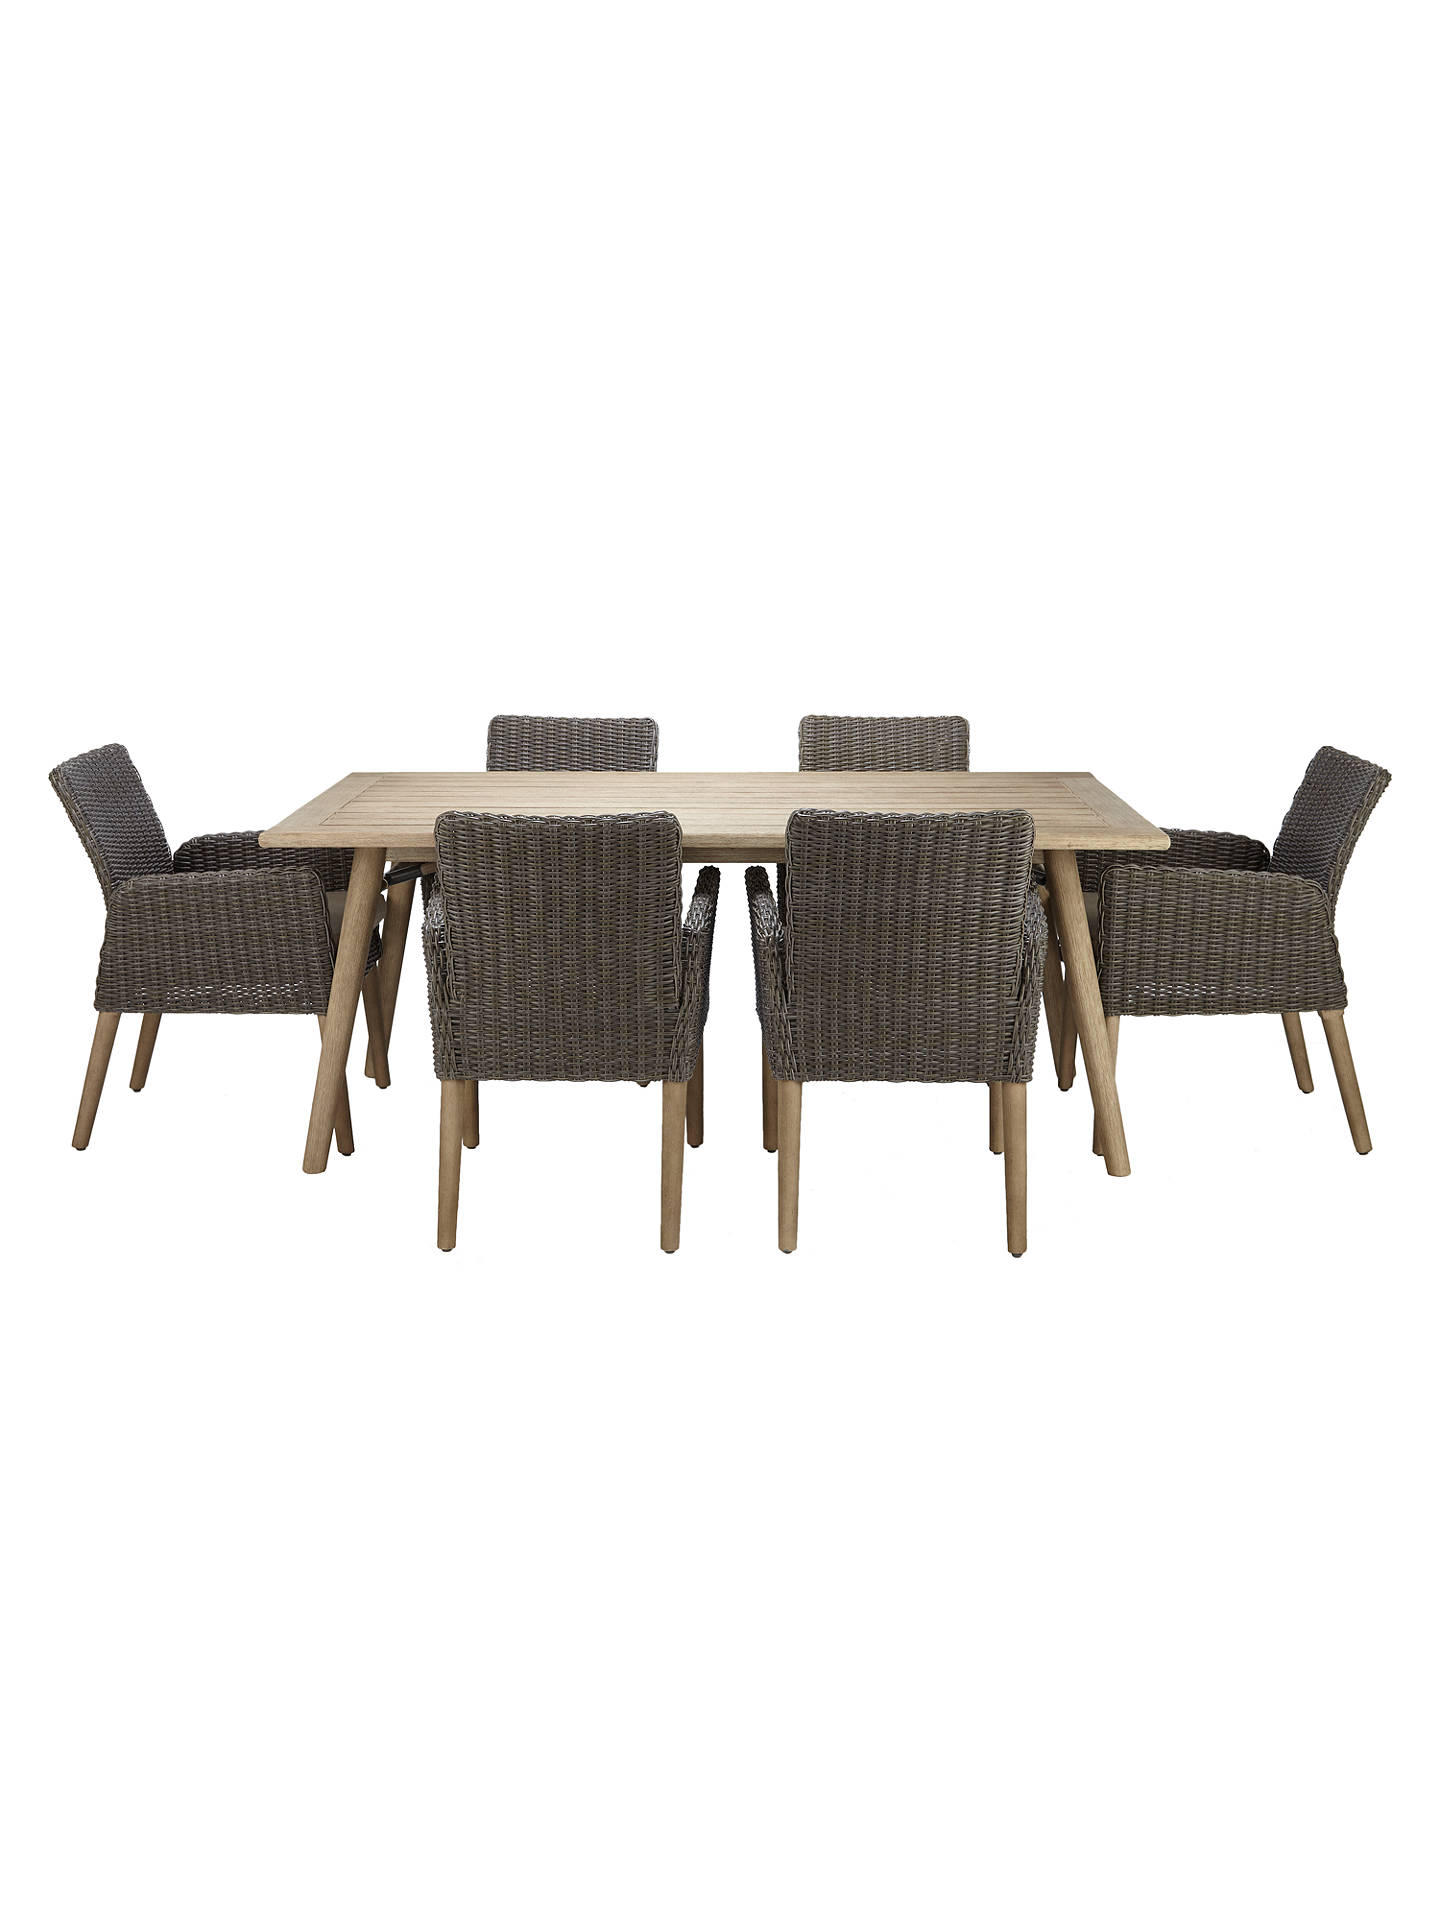 ... BuyJohn Lewis & Partners Eden Outdoor Dining Chairs, FSC-Certified  (Eucalyptus), ... - John Lewis & Partners Eden Outdoor Dining Chairs, FSC-Certified